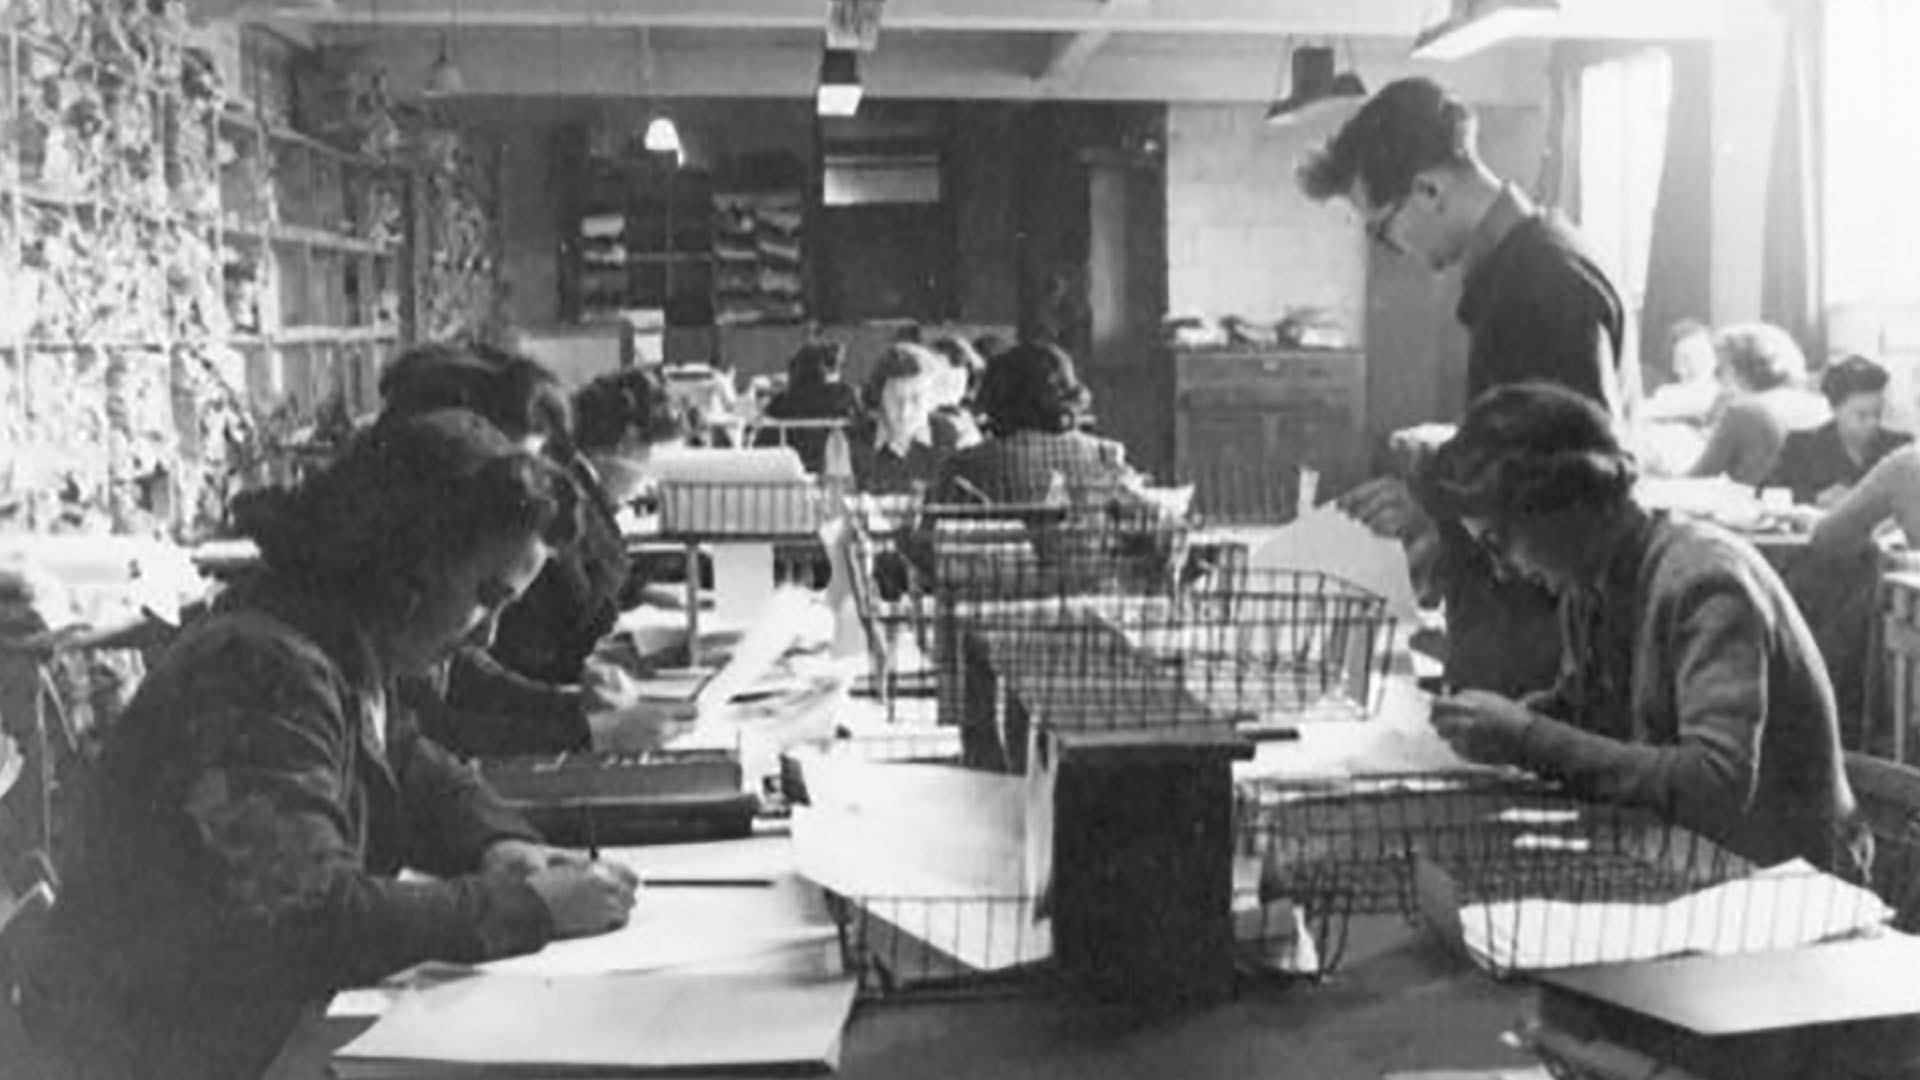 Women at work in Bletchley Park